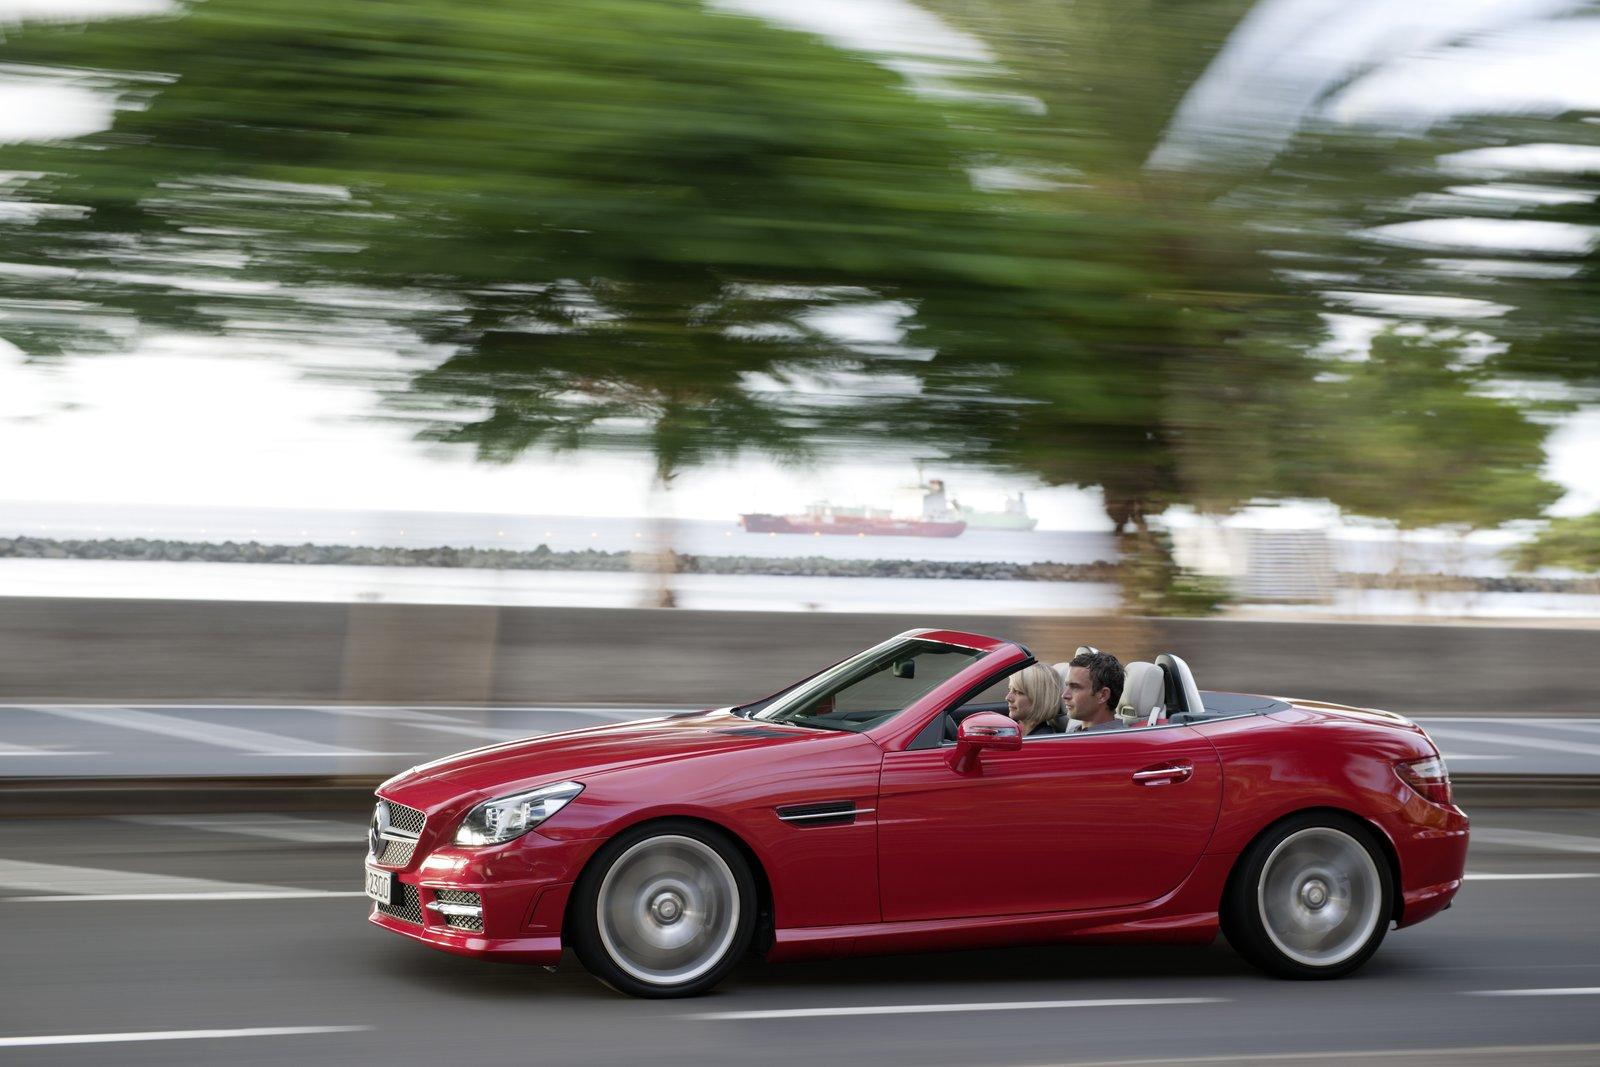 Mercedes-Benz SLK-Class red #4